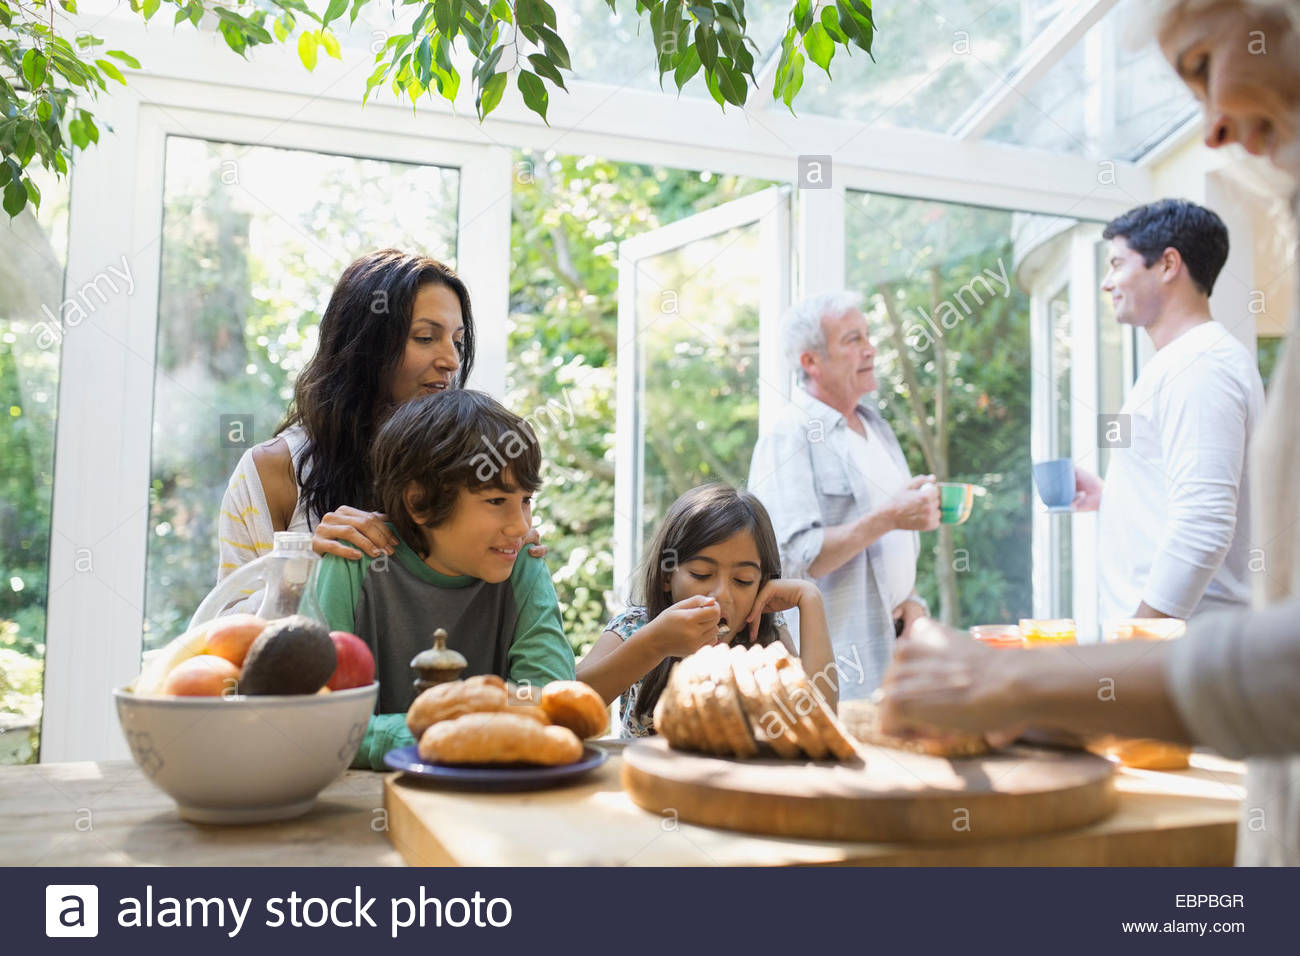 Multi-generation family eating in kitchen Photo Stock